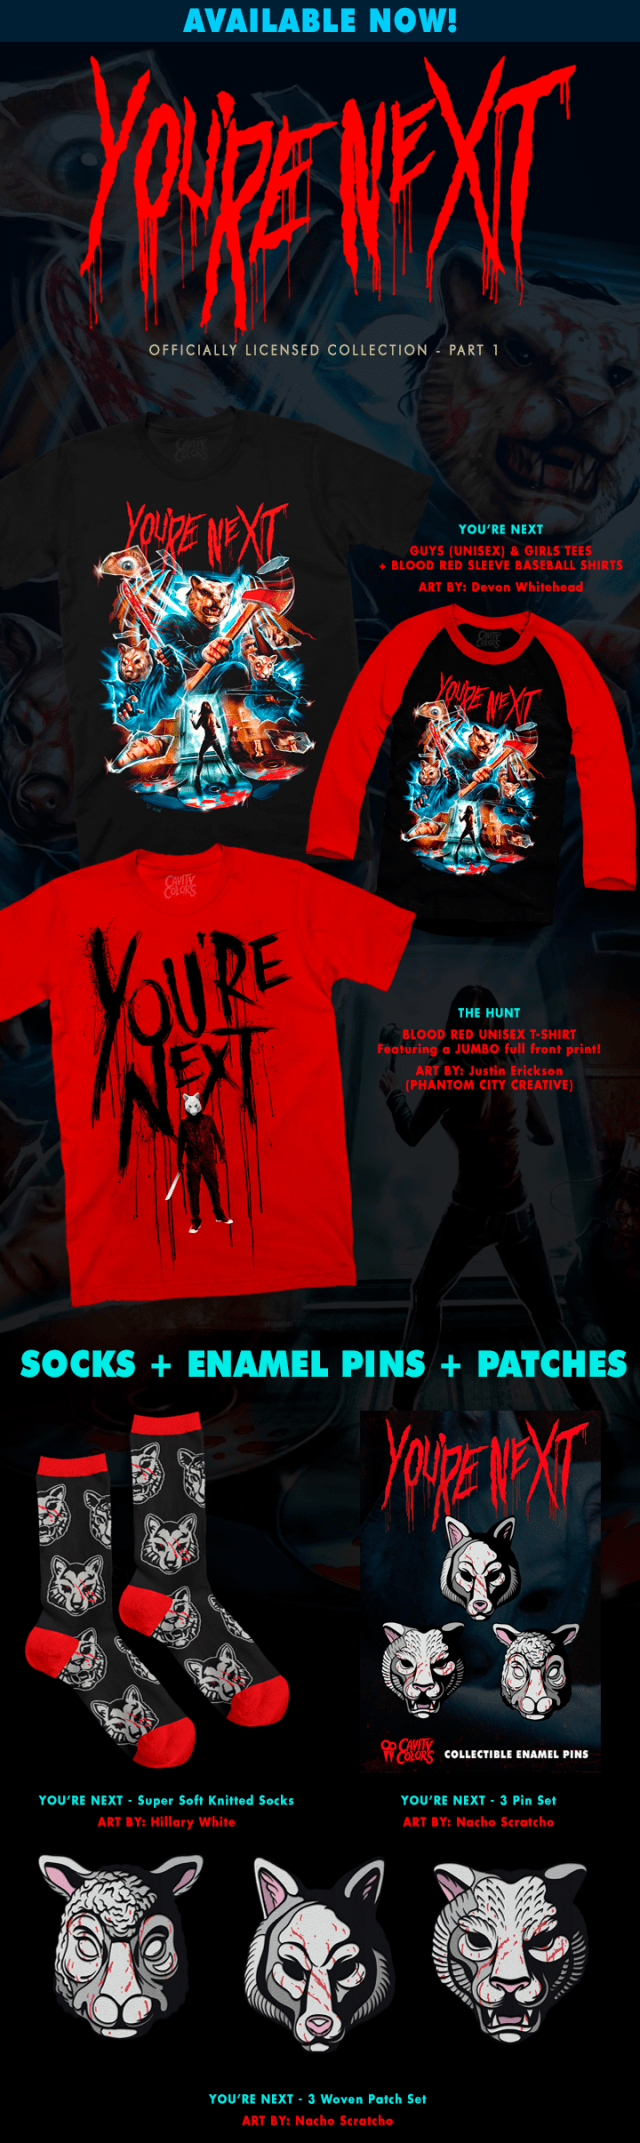 YOU'RE NEXT Collection: Part 1 Now Available from Cavity Colors